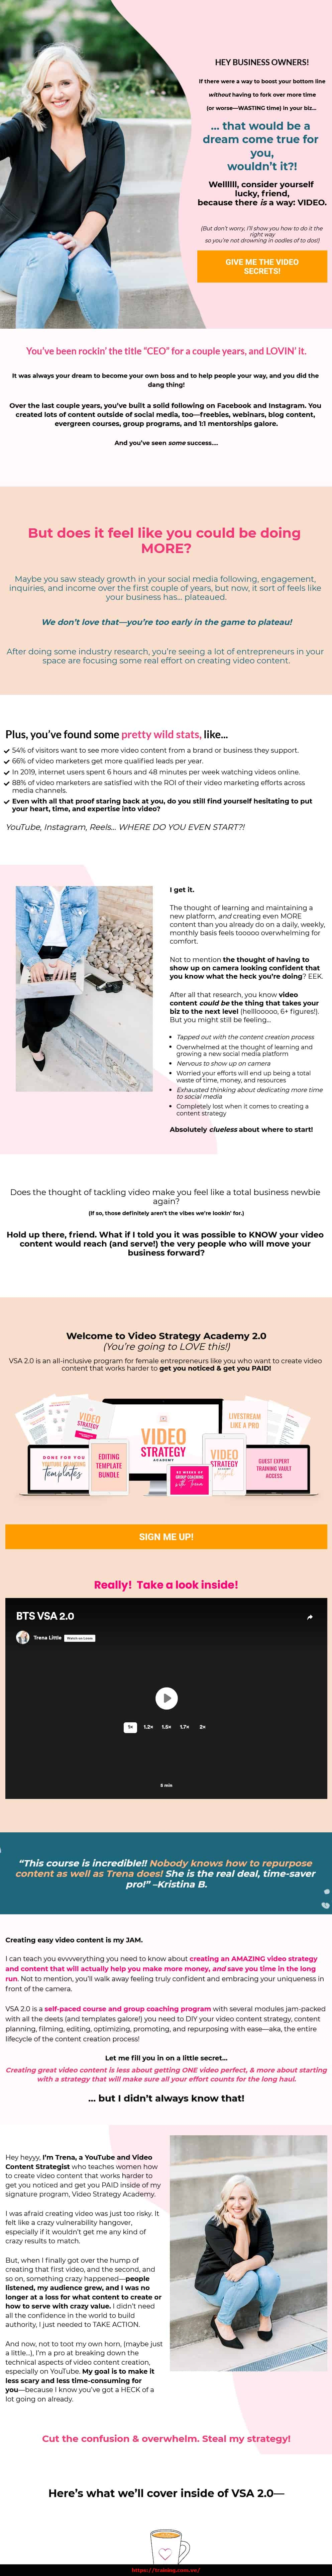 Video Strategy Academy 2.0 by Trena Little Sales Page